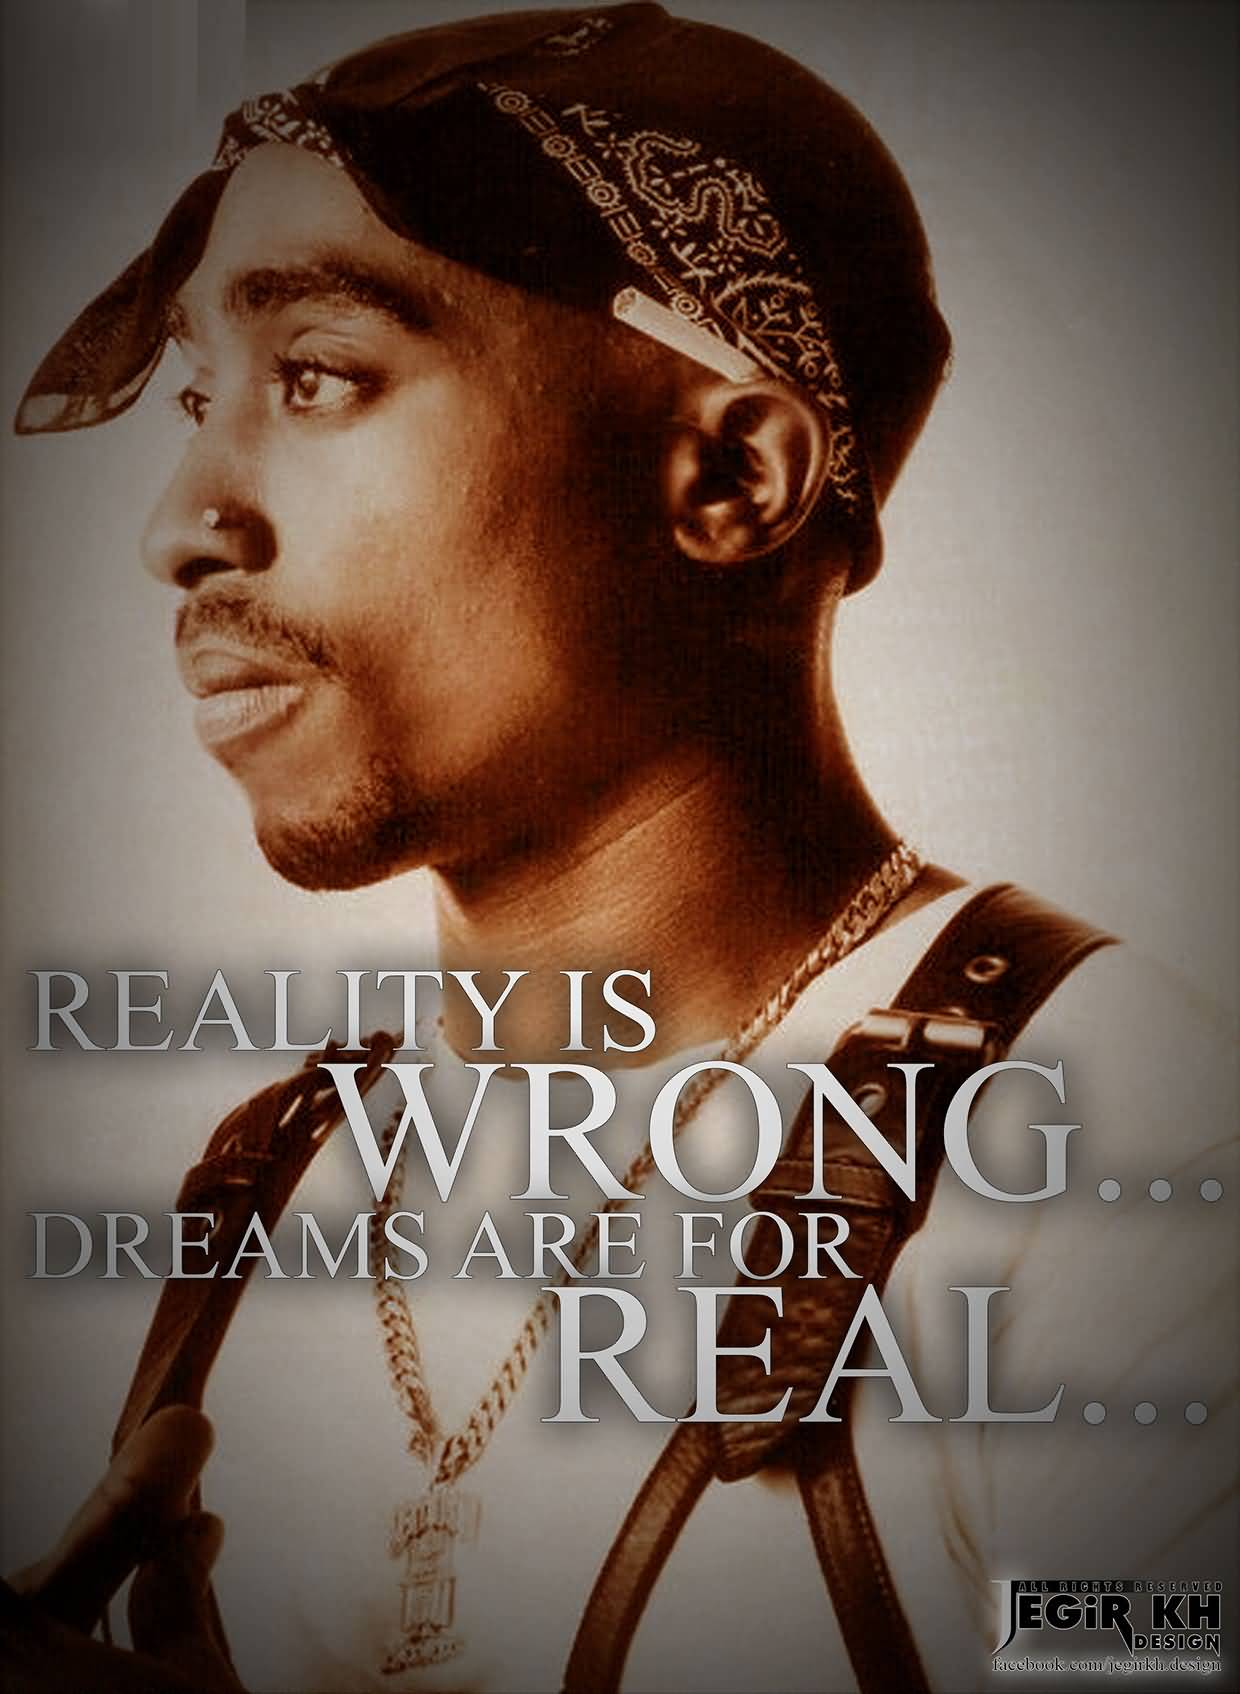 Reality is wrong... Dreams are for real